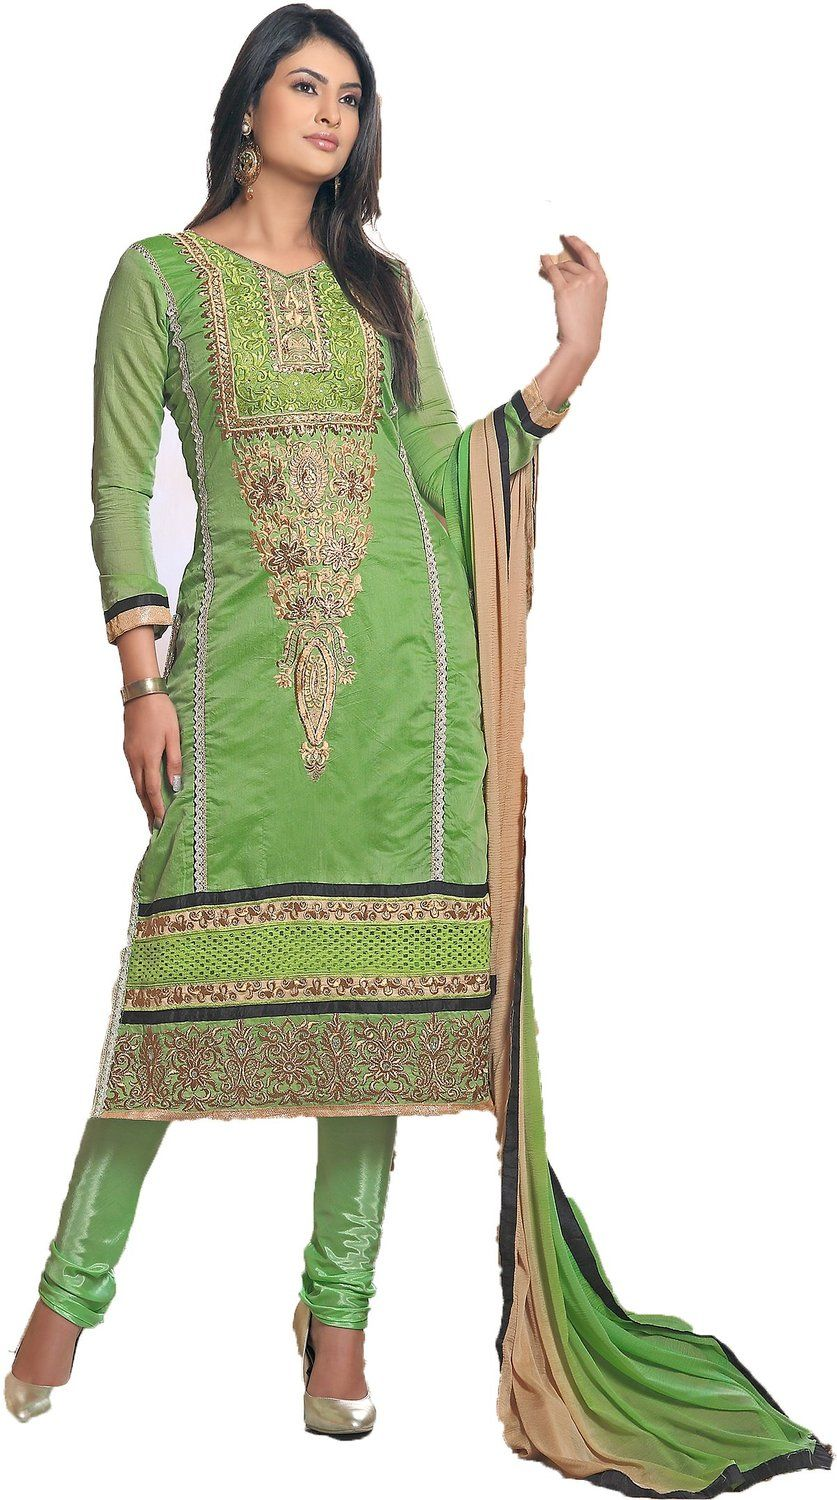 chakudee by white green chanderi drees material: Amazon.in ...